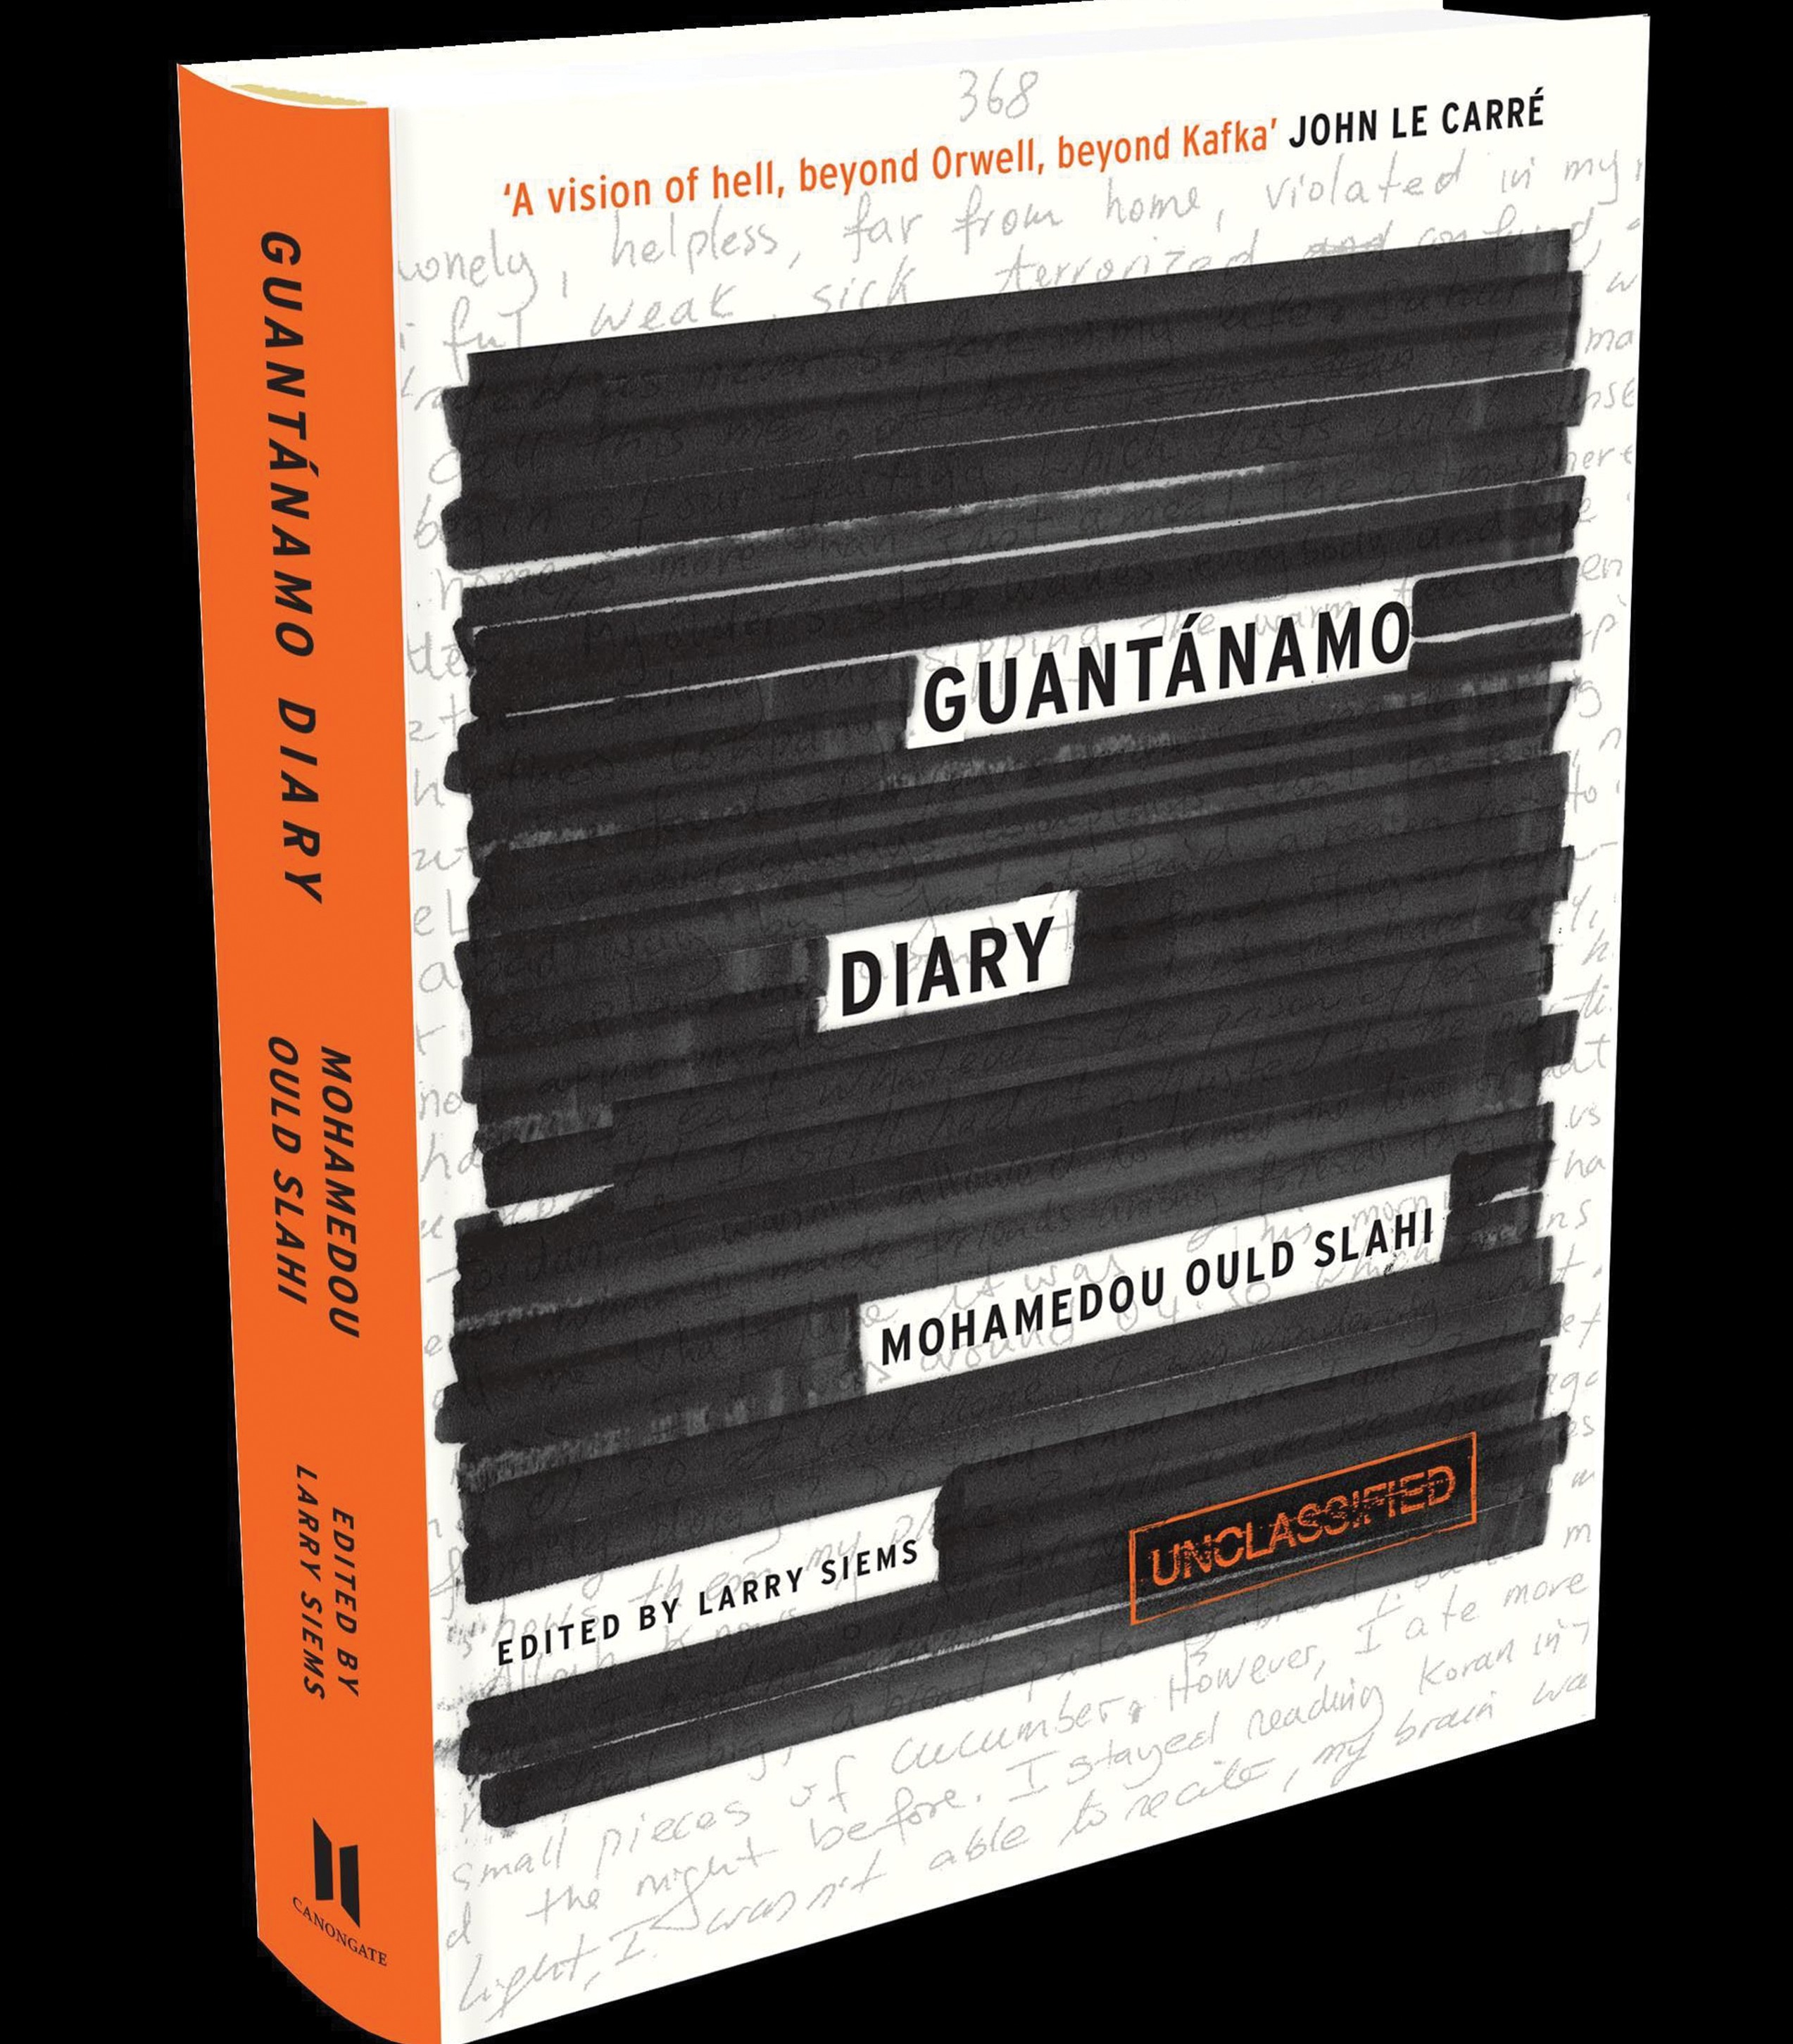 Guantanamo-Diary-book-cover